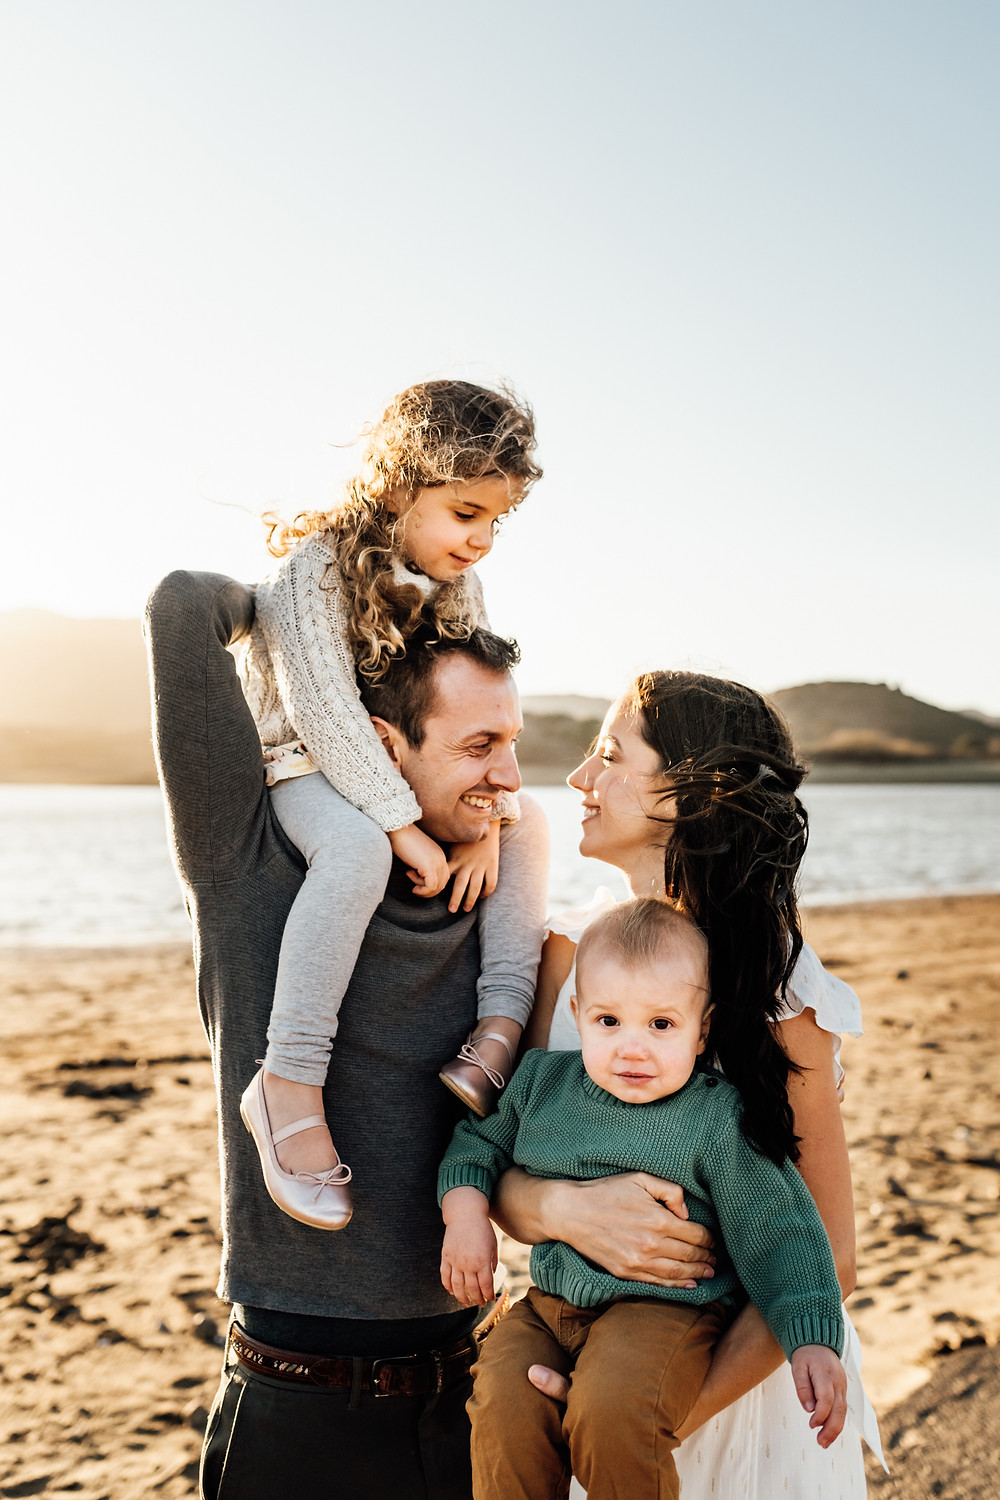 close up photograph of family, mom holding baby toddler boy, boy in green sweater, mom looking lovingly at dad, daughter on dad's shoulders, water, sunset, Novato, sunset family photographer, Northern California family photographer, Diana Jex